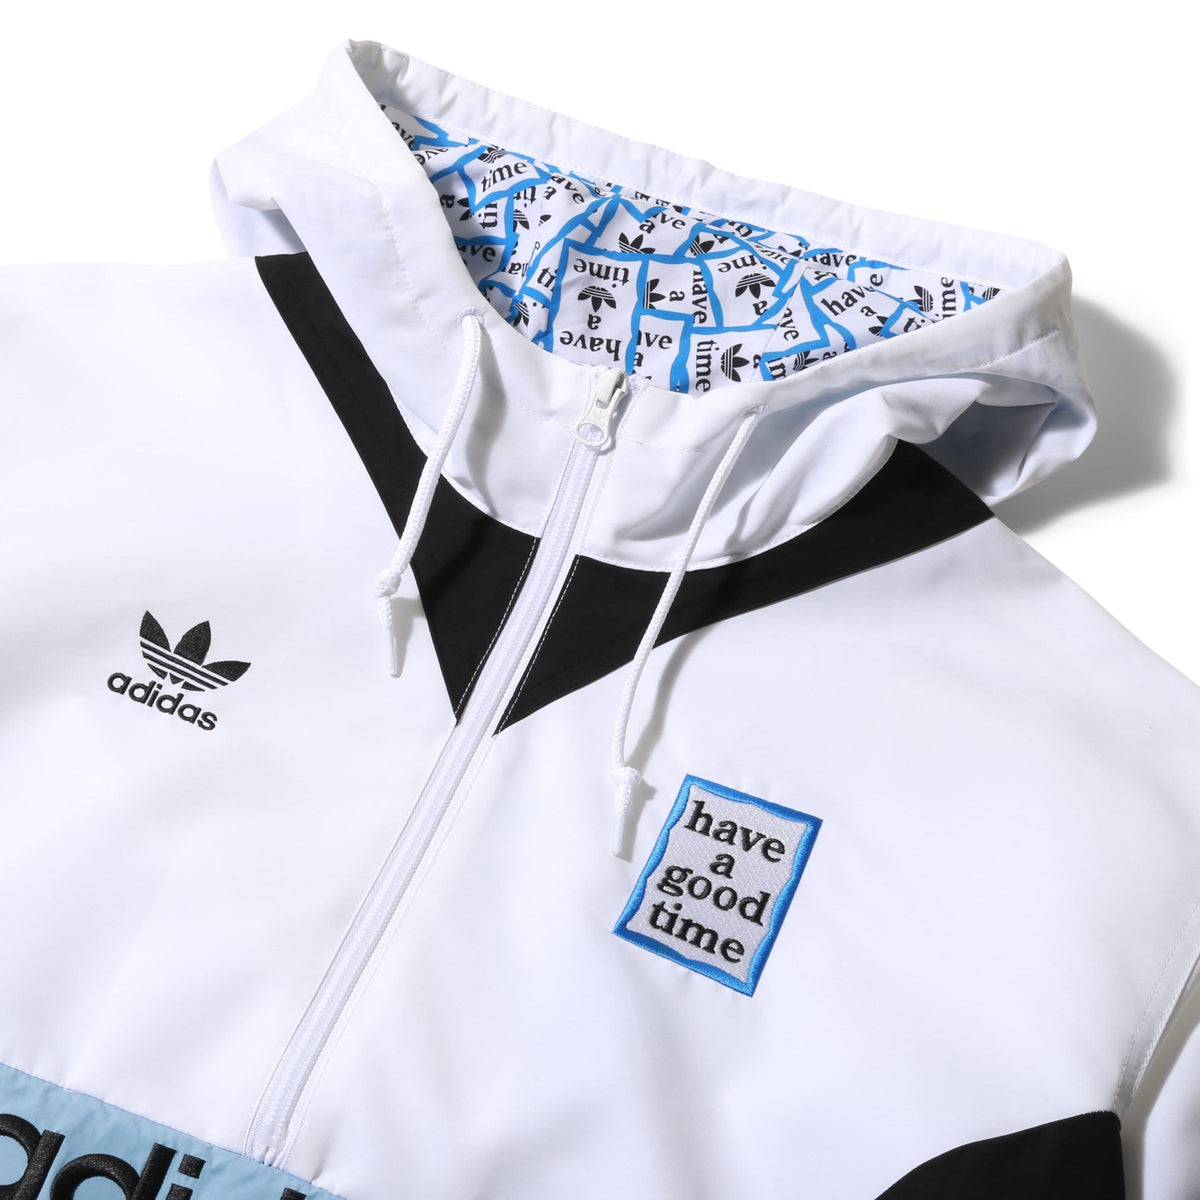 Problema bestia Contradicción  x Have A Good Time PULLOVER WINDBREAKER White/Black/Clear Blue – Bodega